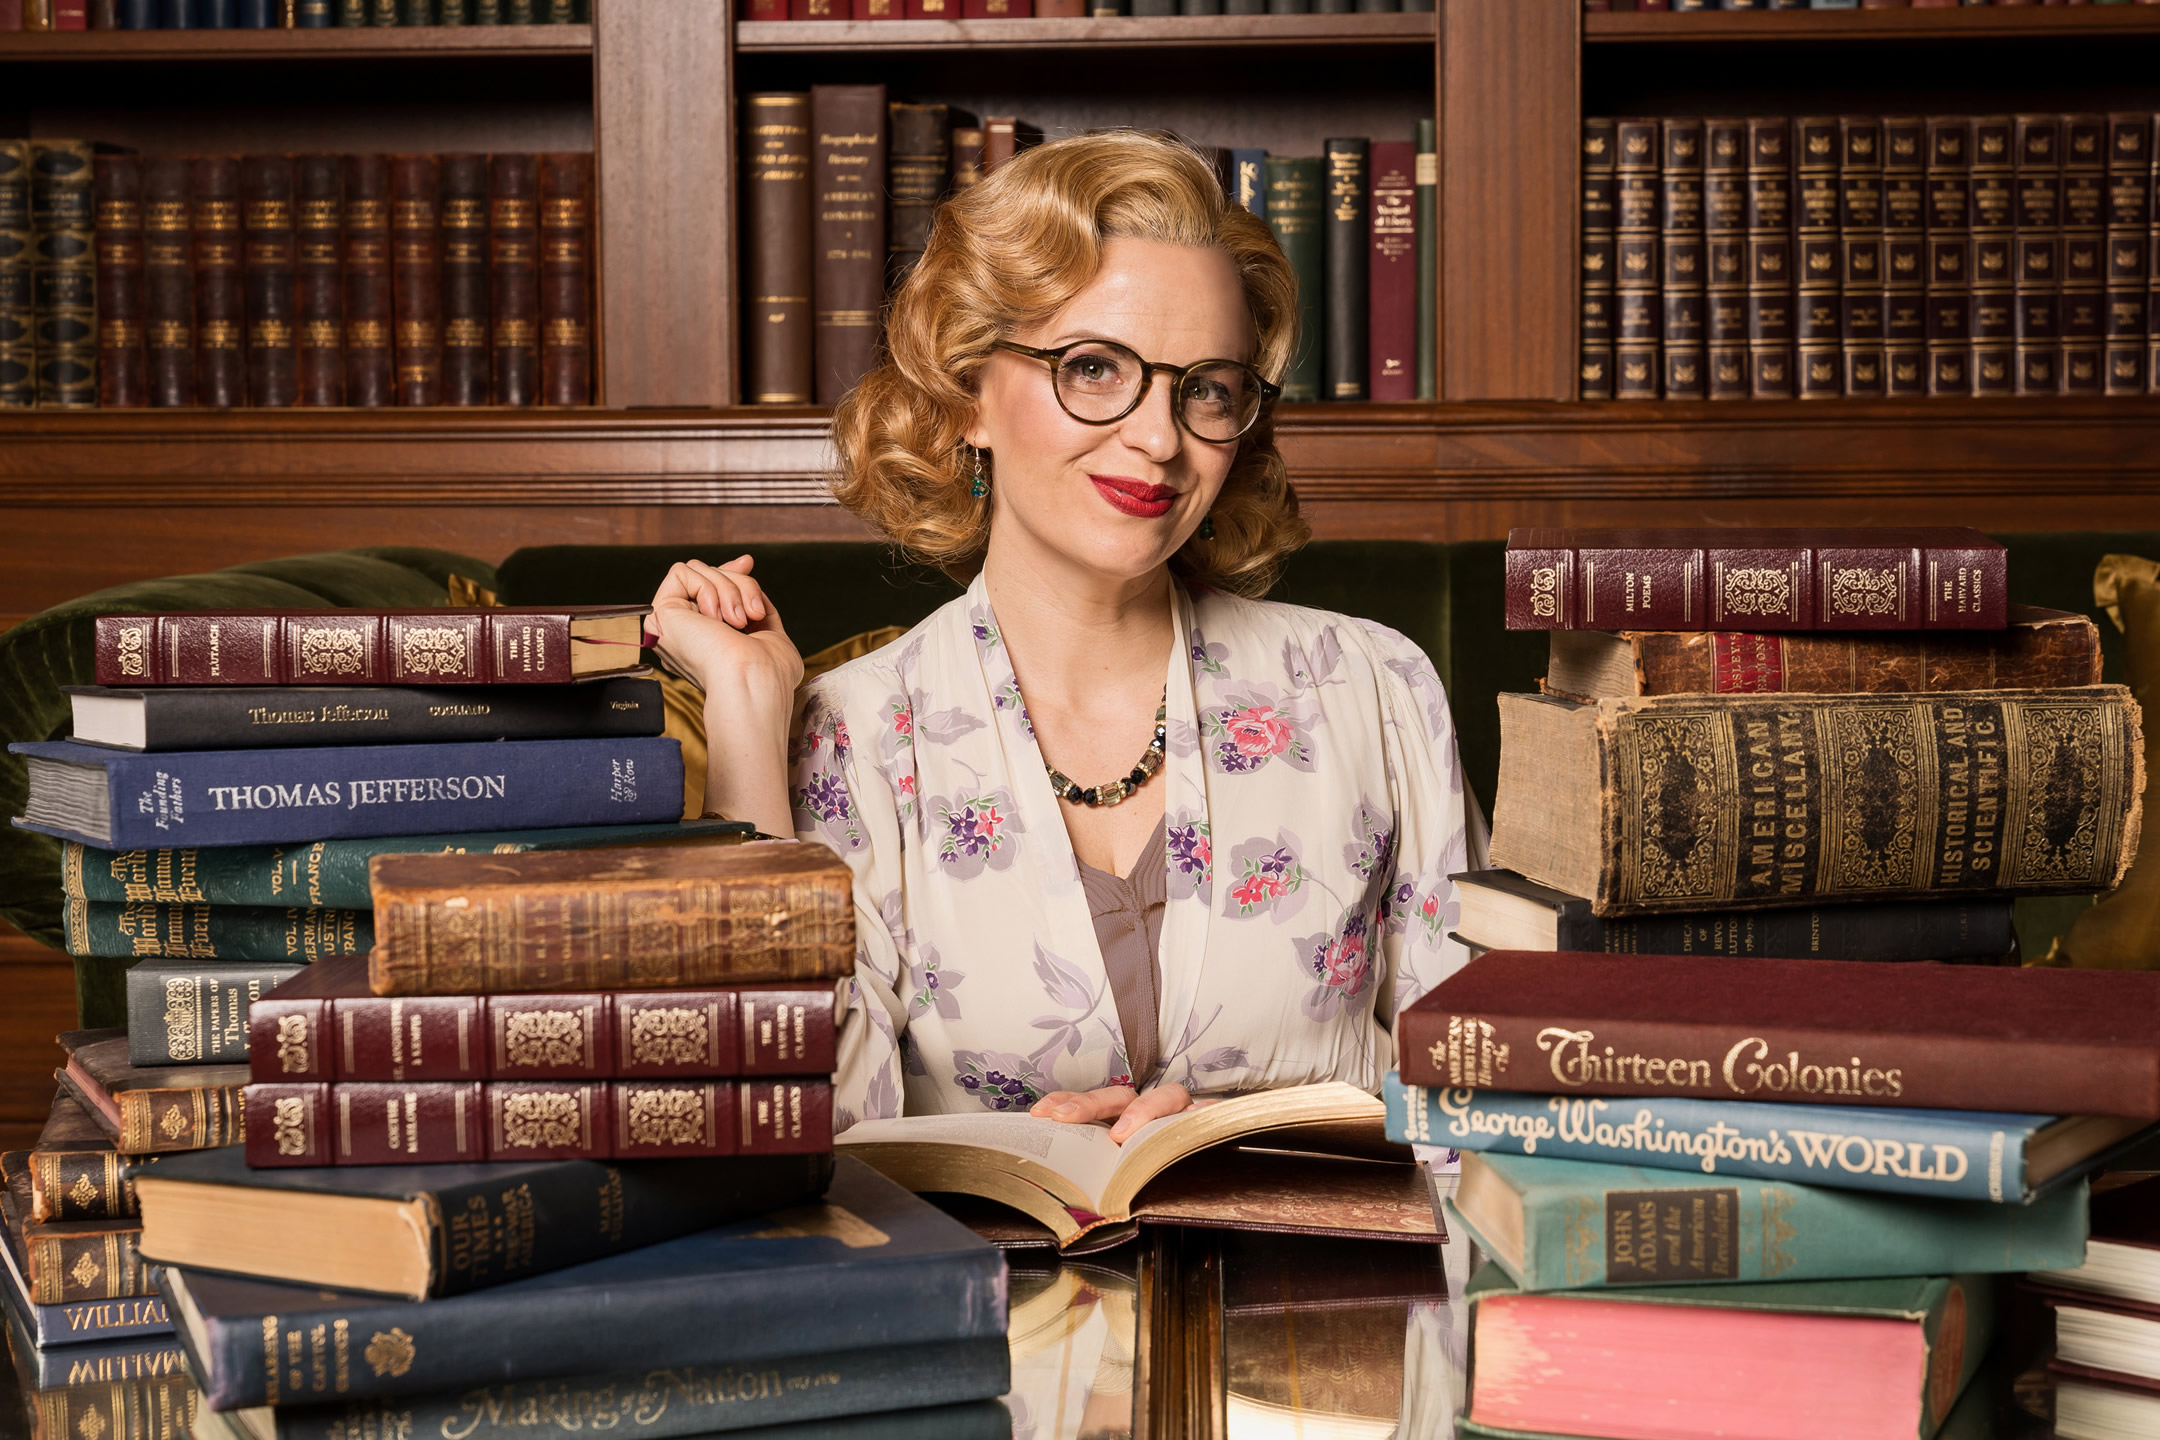 Actress Kimberly Gilbert dressed in a 1940s-stylled curled wig and creme-colored blouse sits in a library surrounded by piles of books and bookcases that are filled with books about the founding of America. Photo by Scott Suchman.